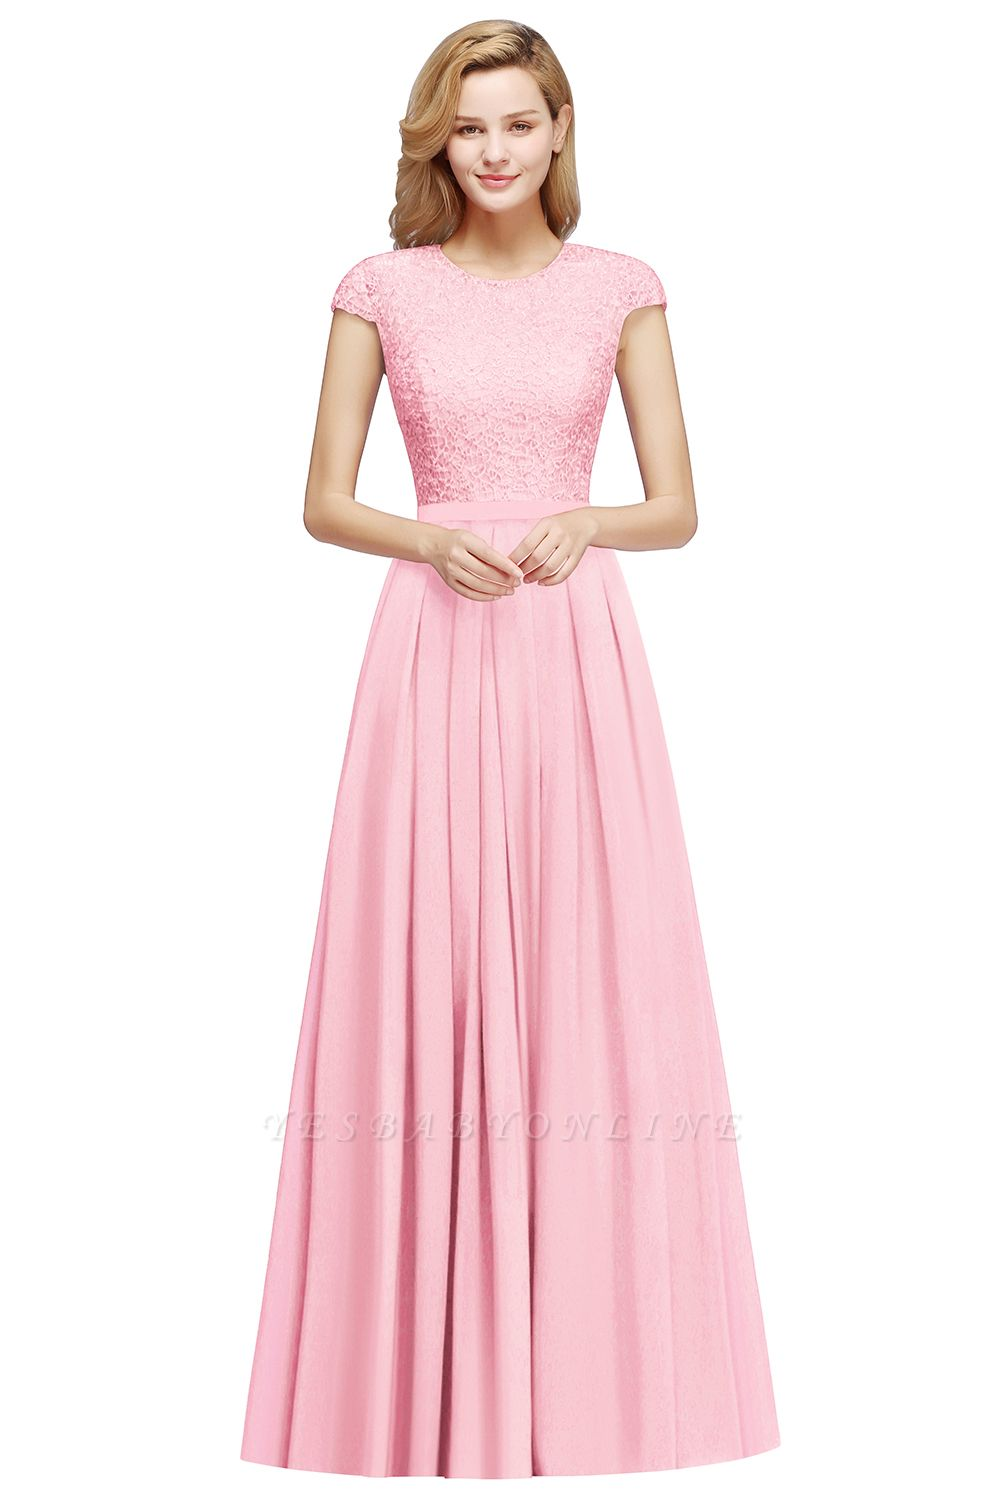 Cheap A-line Jewel Short Sleeves Chiffon Lace Bridesmaid Dress in Stock